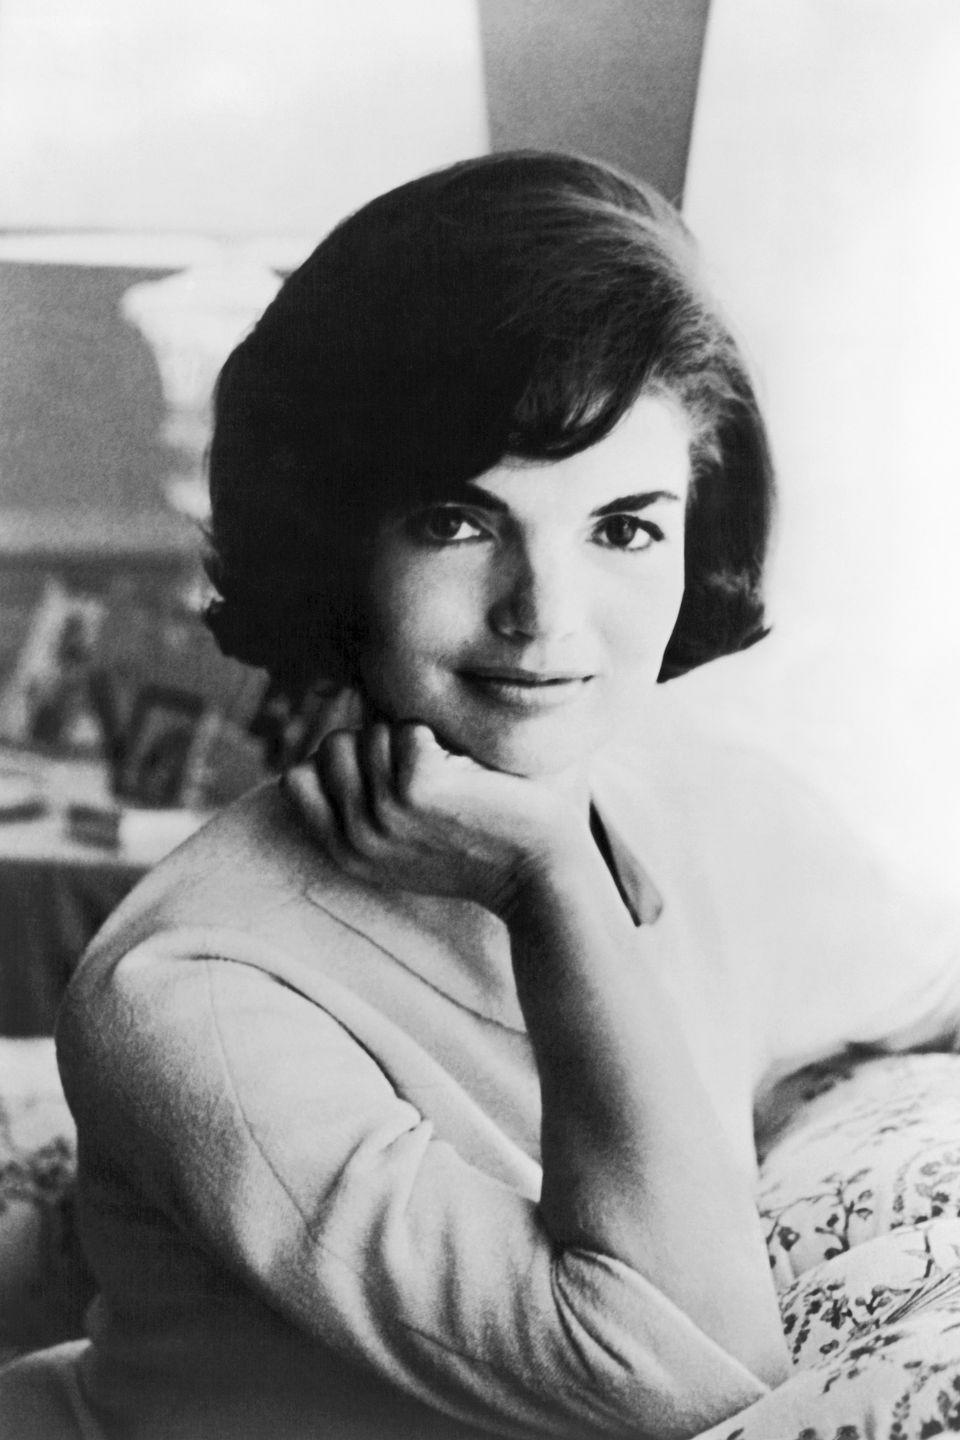 <p>For her first official photograph as First Lady in 1961, the Southampton-born beauty wore a simple long-sleeved sheath. This casual pose illustrated her easy elegance. </p>